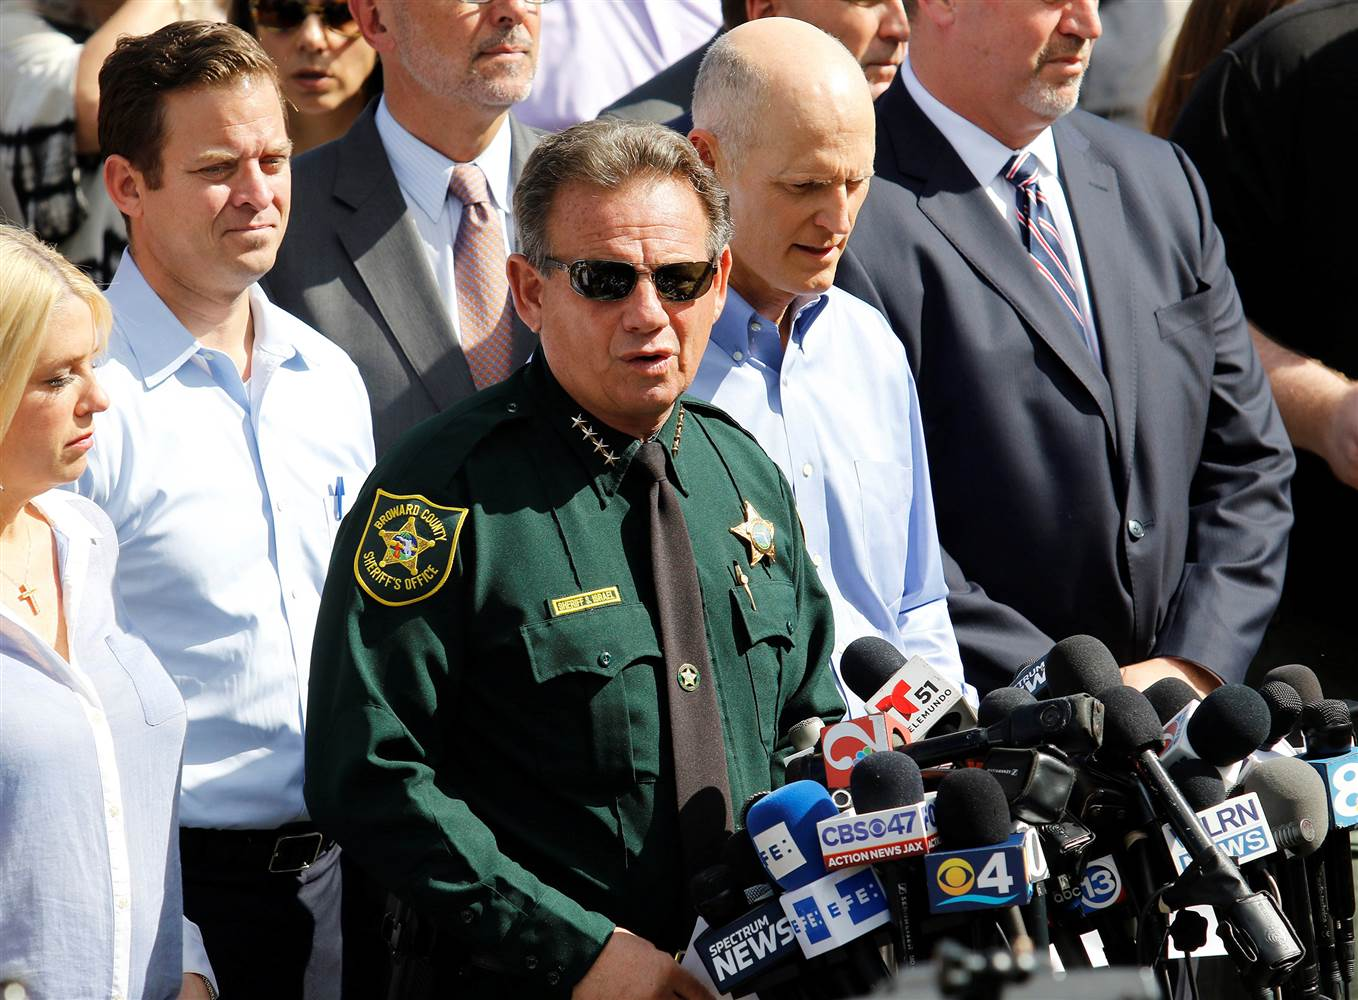 Sheriffs Office Urged to Come Clean After Its Revealed Who Ordered Deputies Not to Engage Parkland Shooter